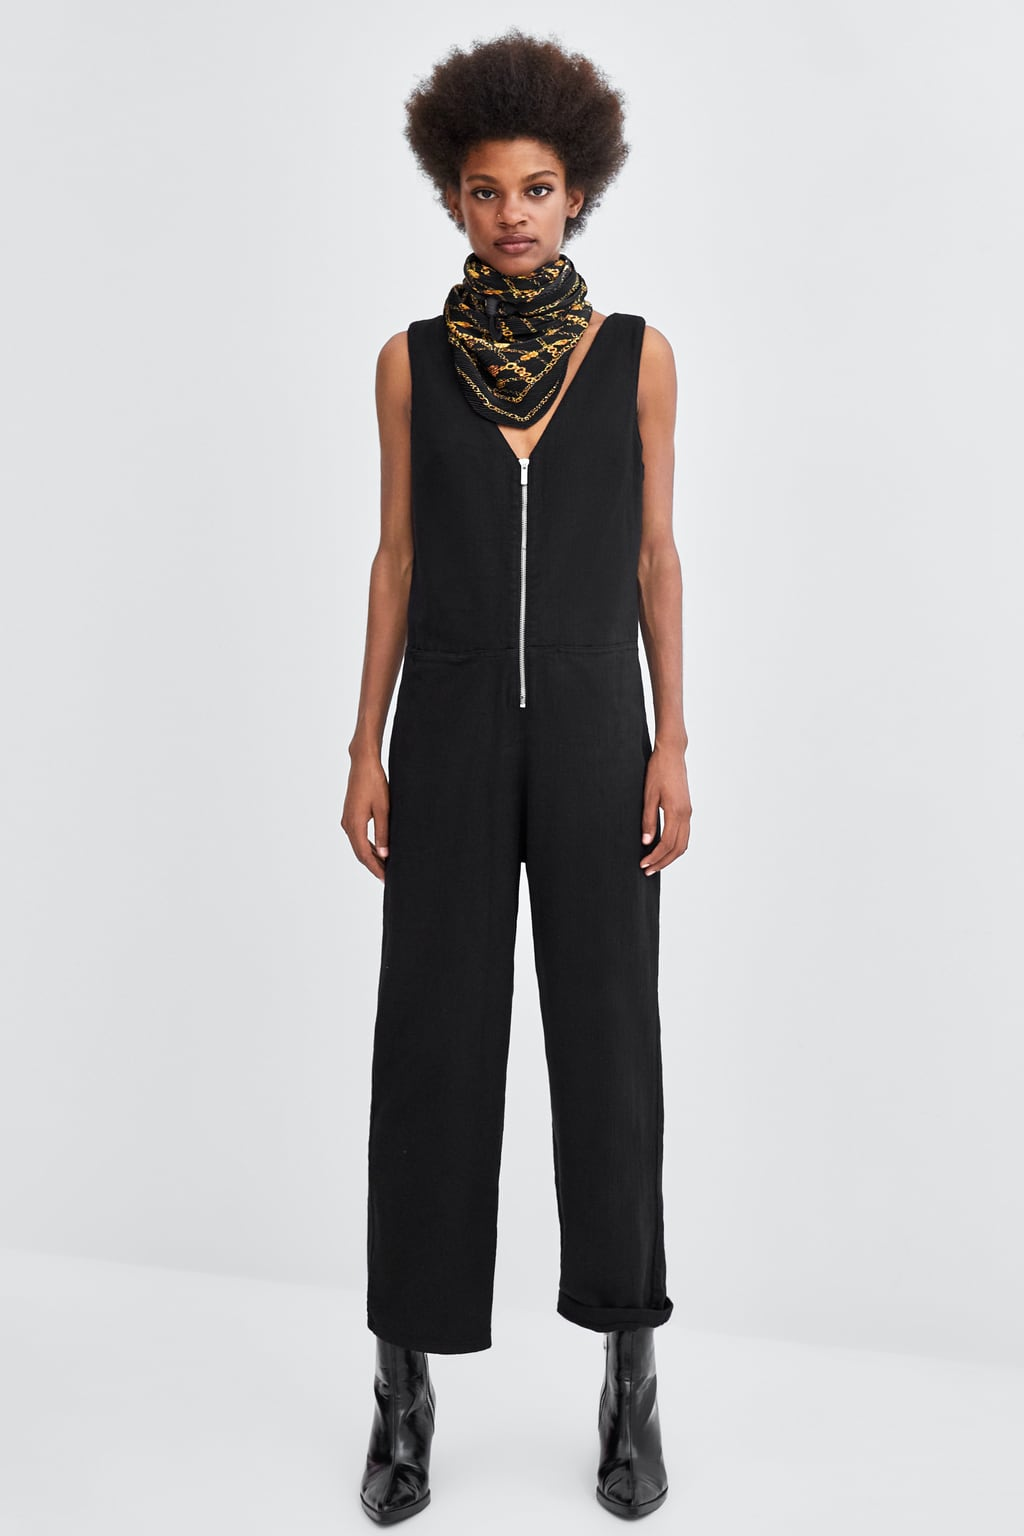 Zara Jumpsuit £29.99   Style with a tee or rollneck underneath